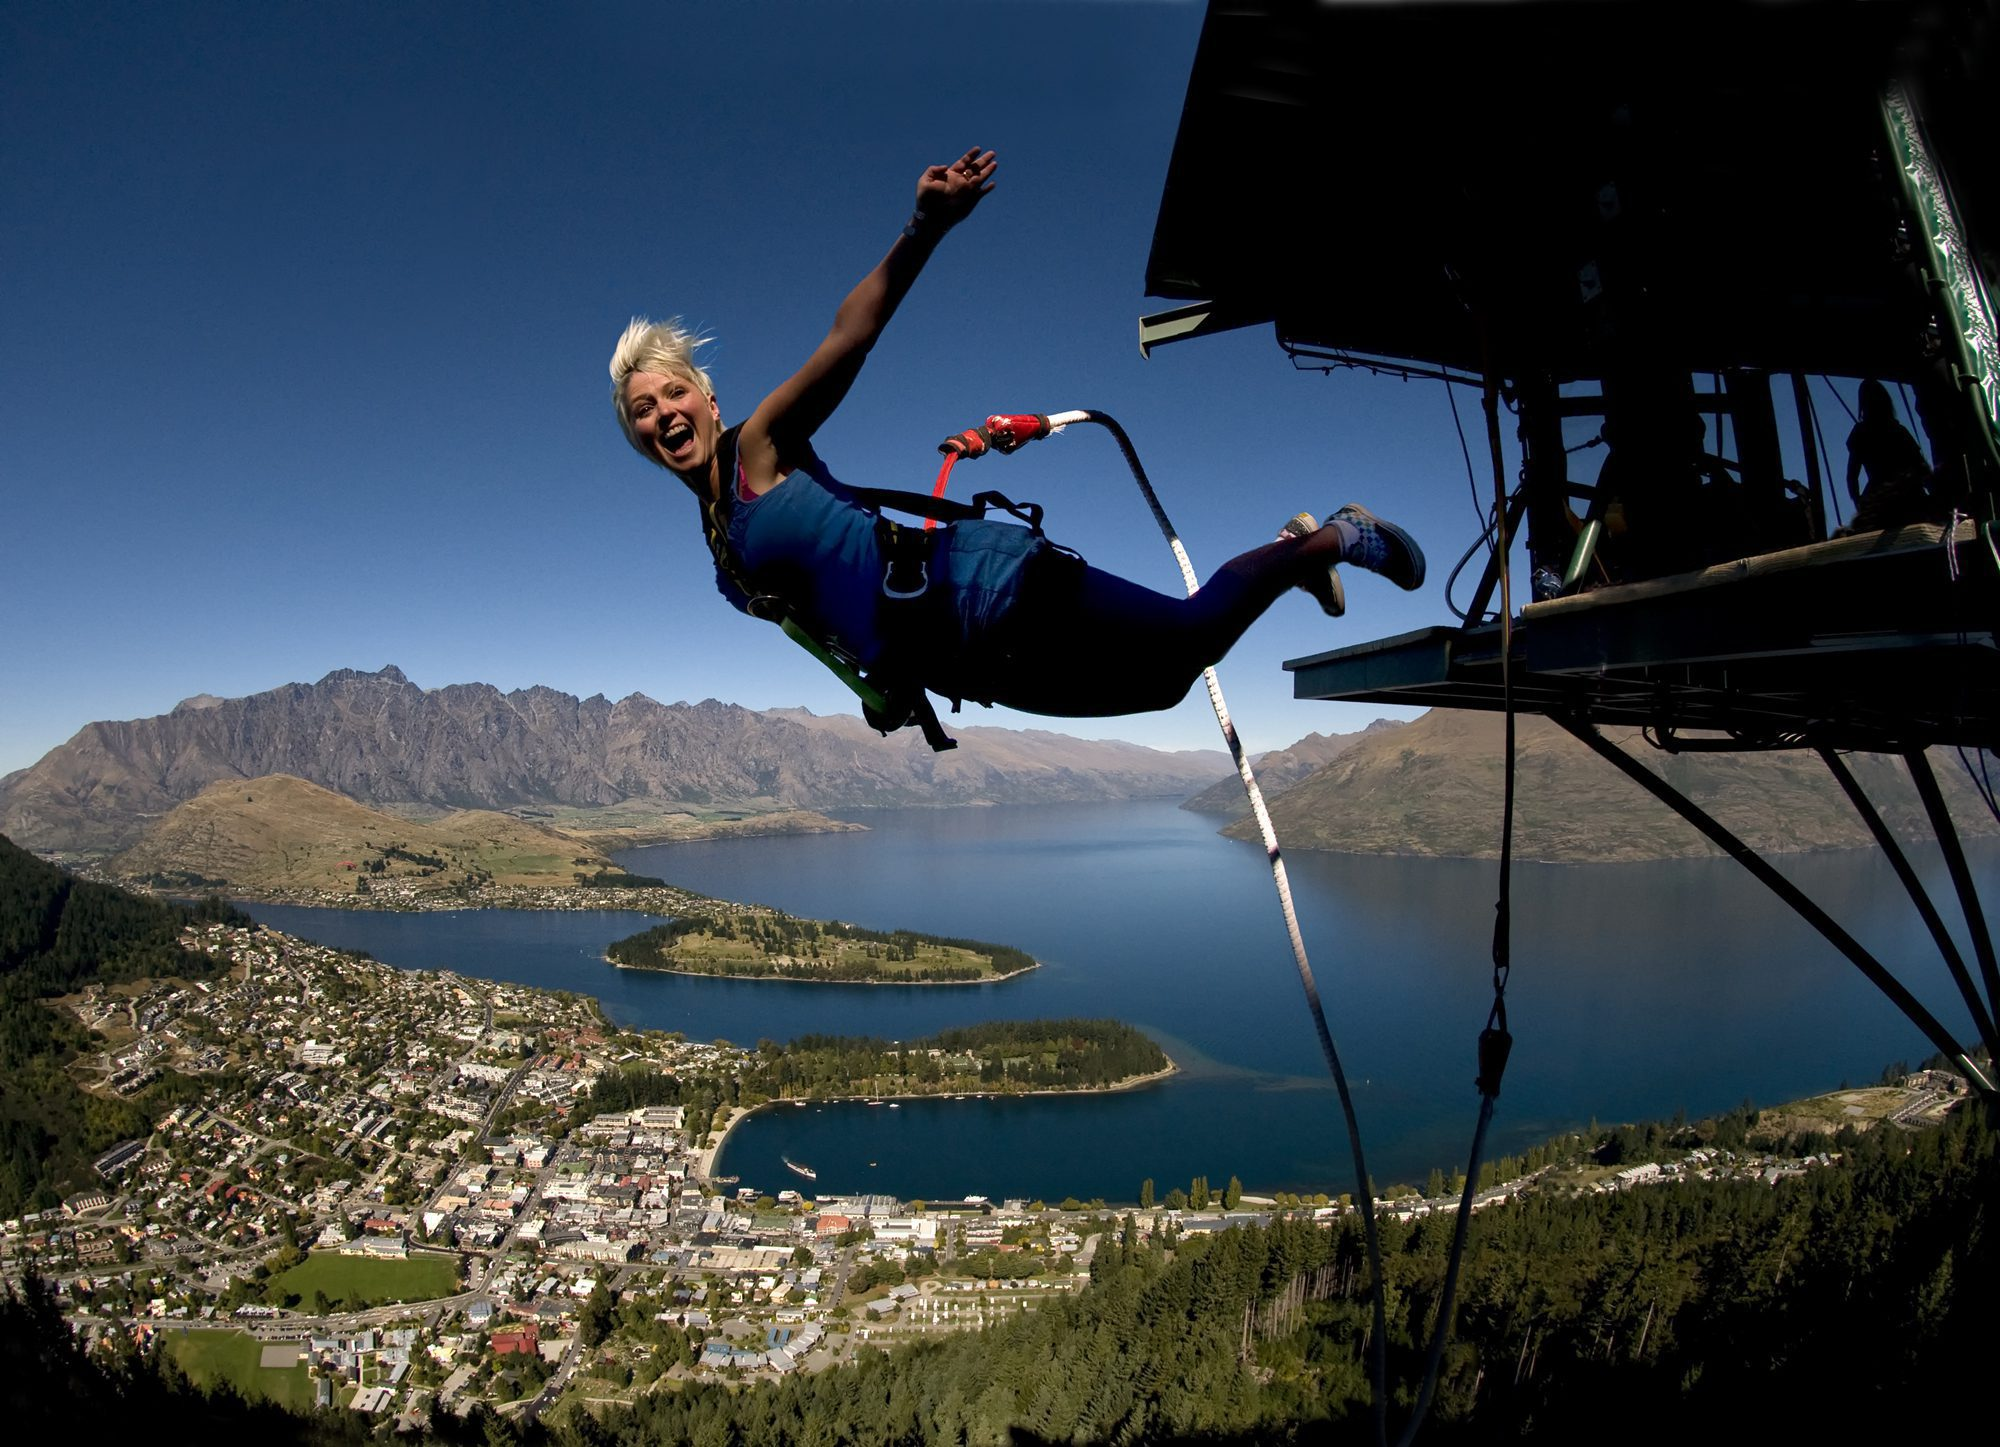 Woman looks at the camera as she bungee jumps off the platform in Queenstown